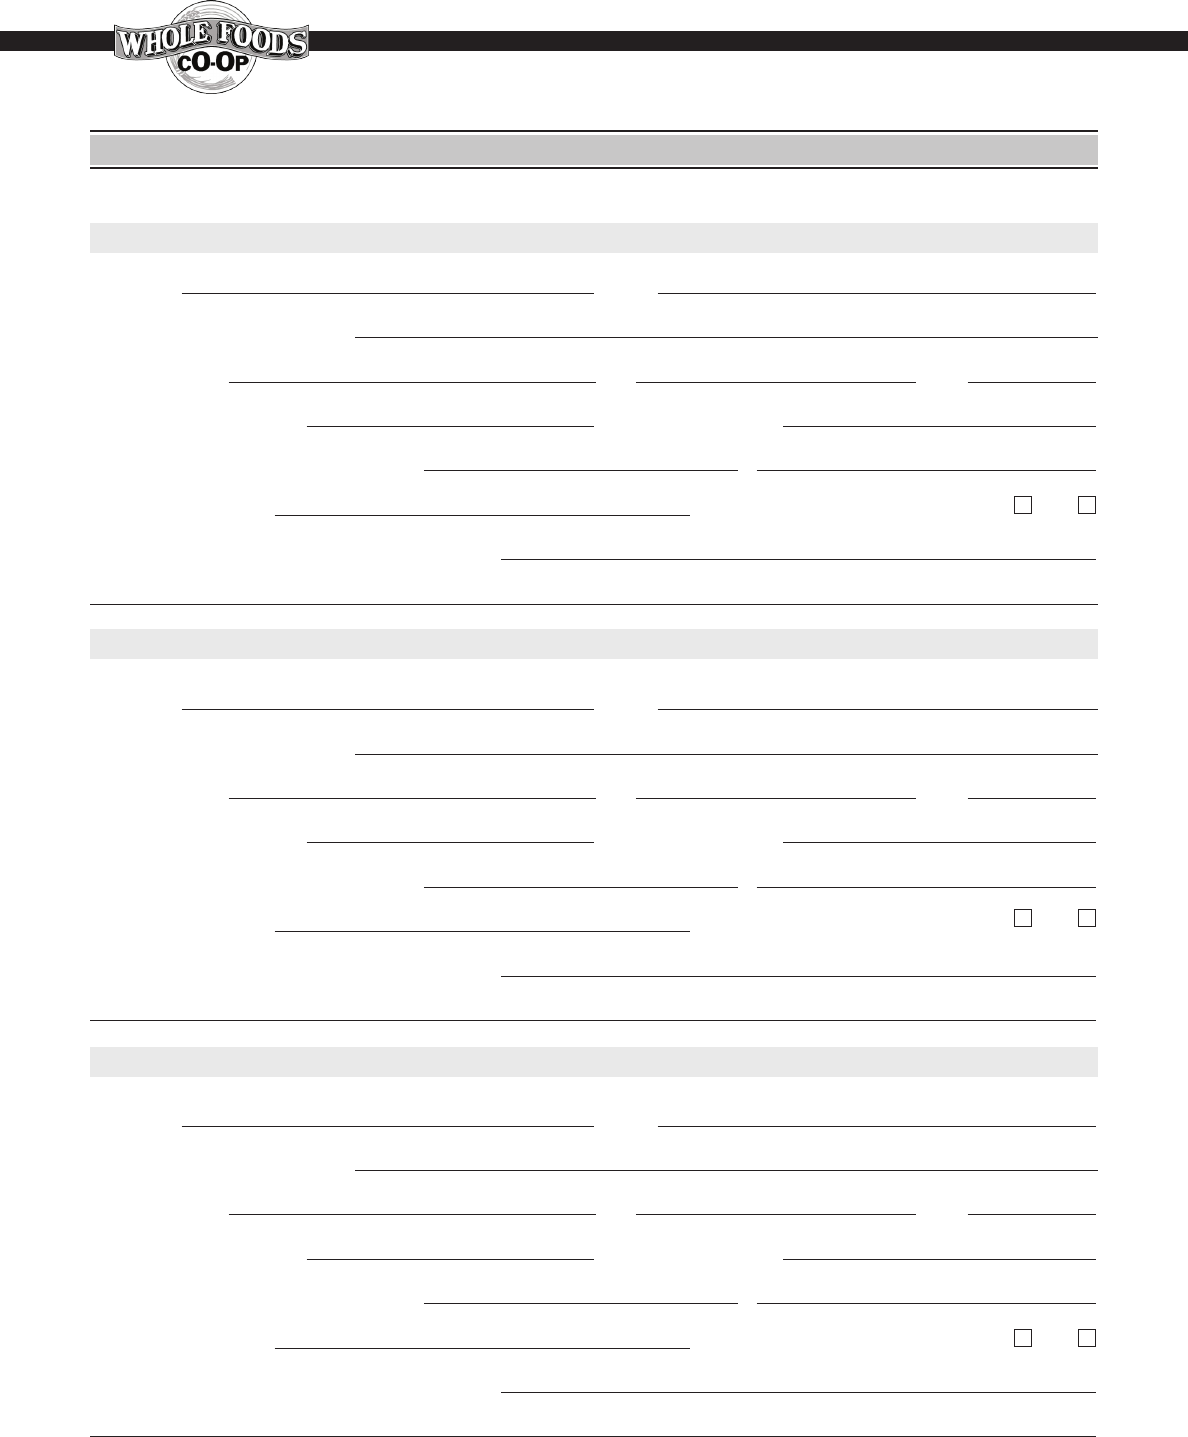 Free printable whole foods job application form page 4 falaconquin